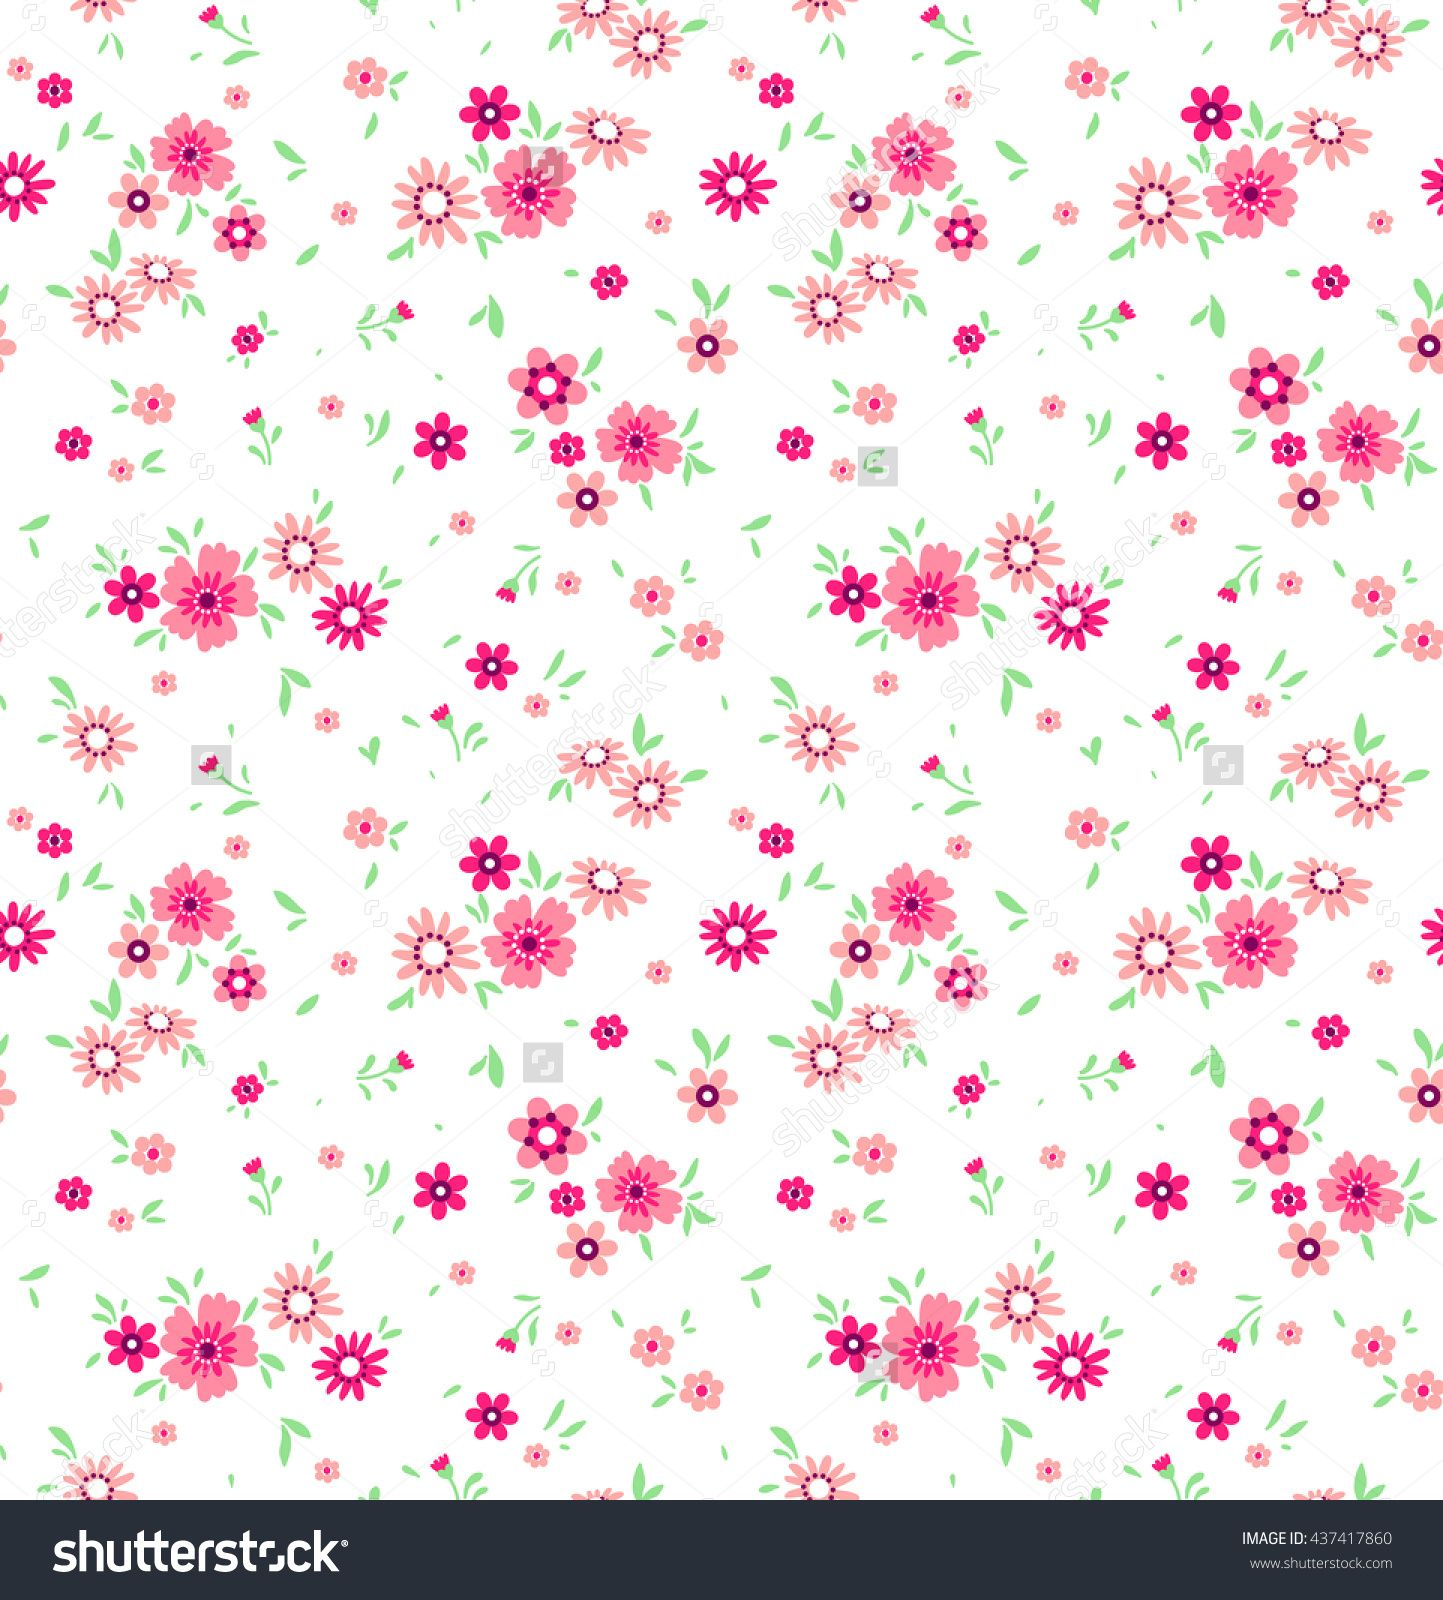 Cute Pattern In Small Flower. Small Pink Flowers. White